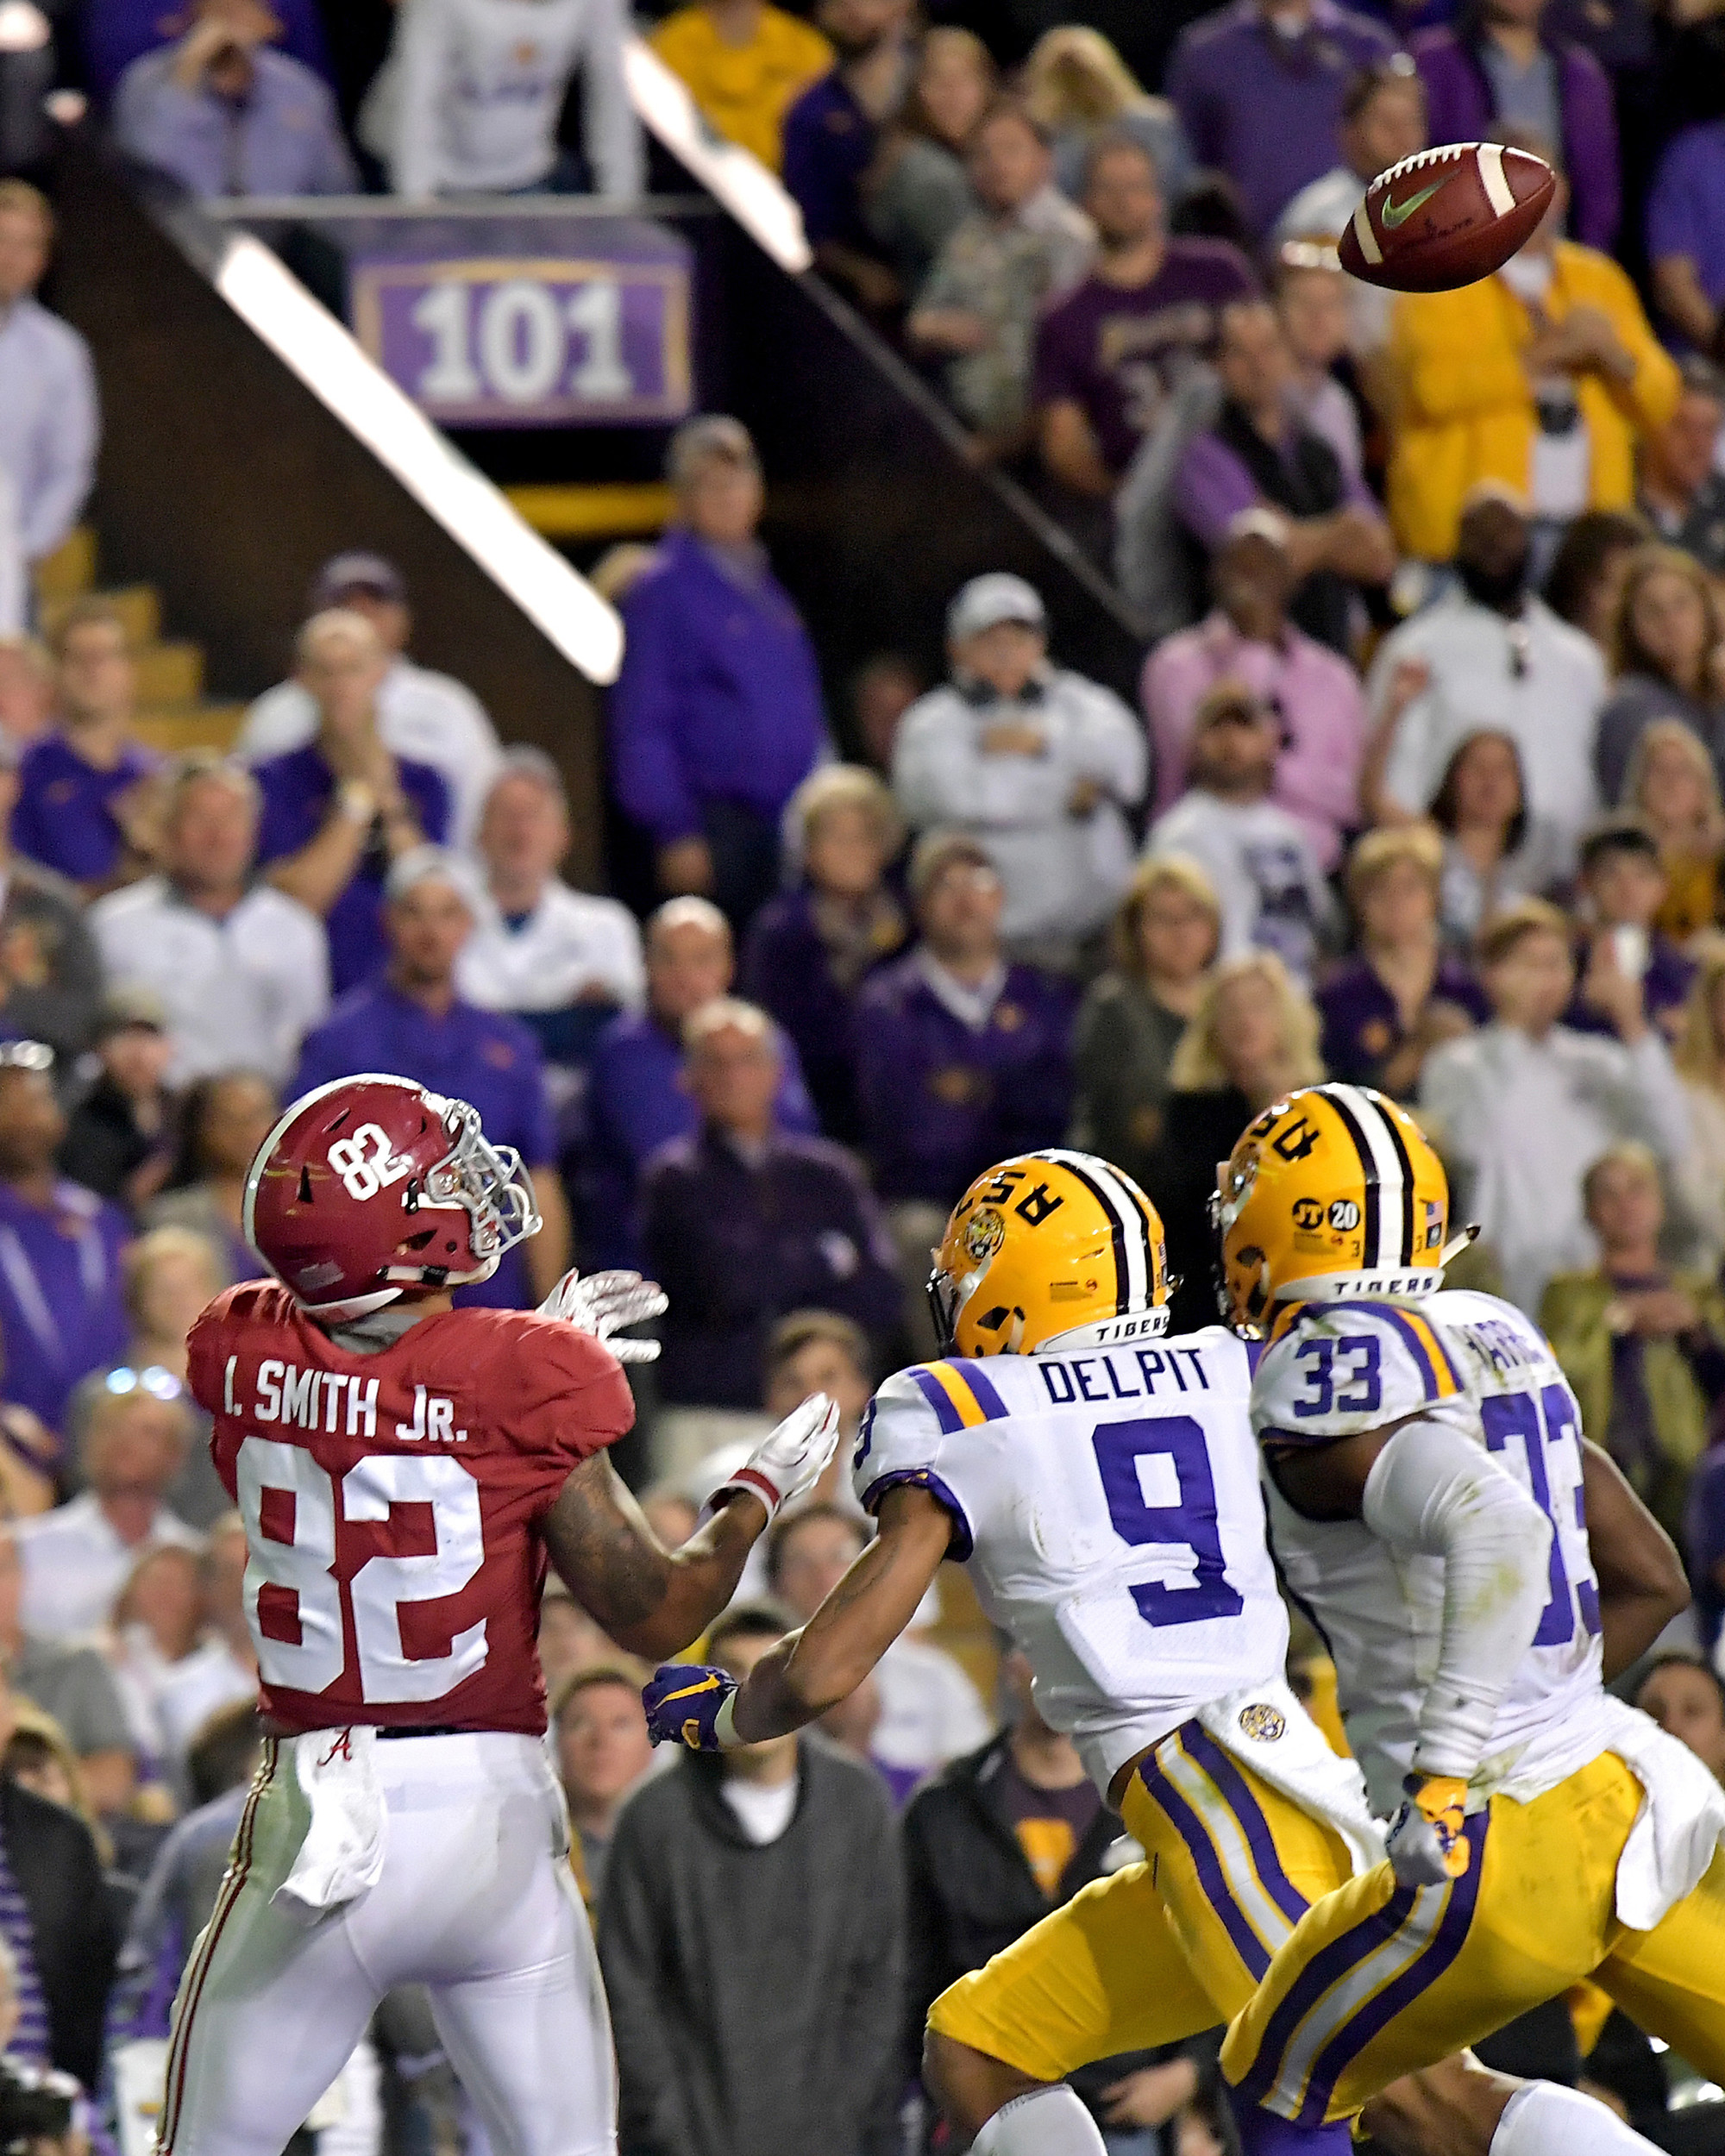 Alabama Crimson Tide tight end Irv Smith Jr. (82) prepares to make a catch for a touchdown in the first half of an NCAA football game against the LSU Tigers Saturday, November 3, 2018, at Tiger Stadium in Baton Rouge, La. Alabama wins 29-0. (Photo by Lee Walls)